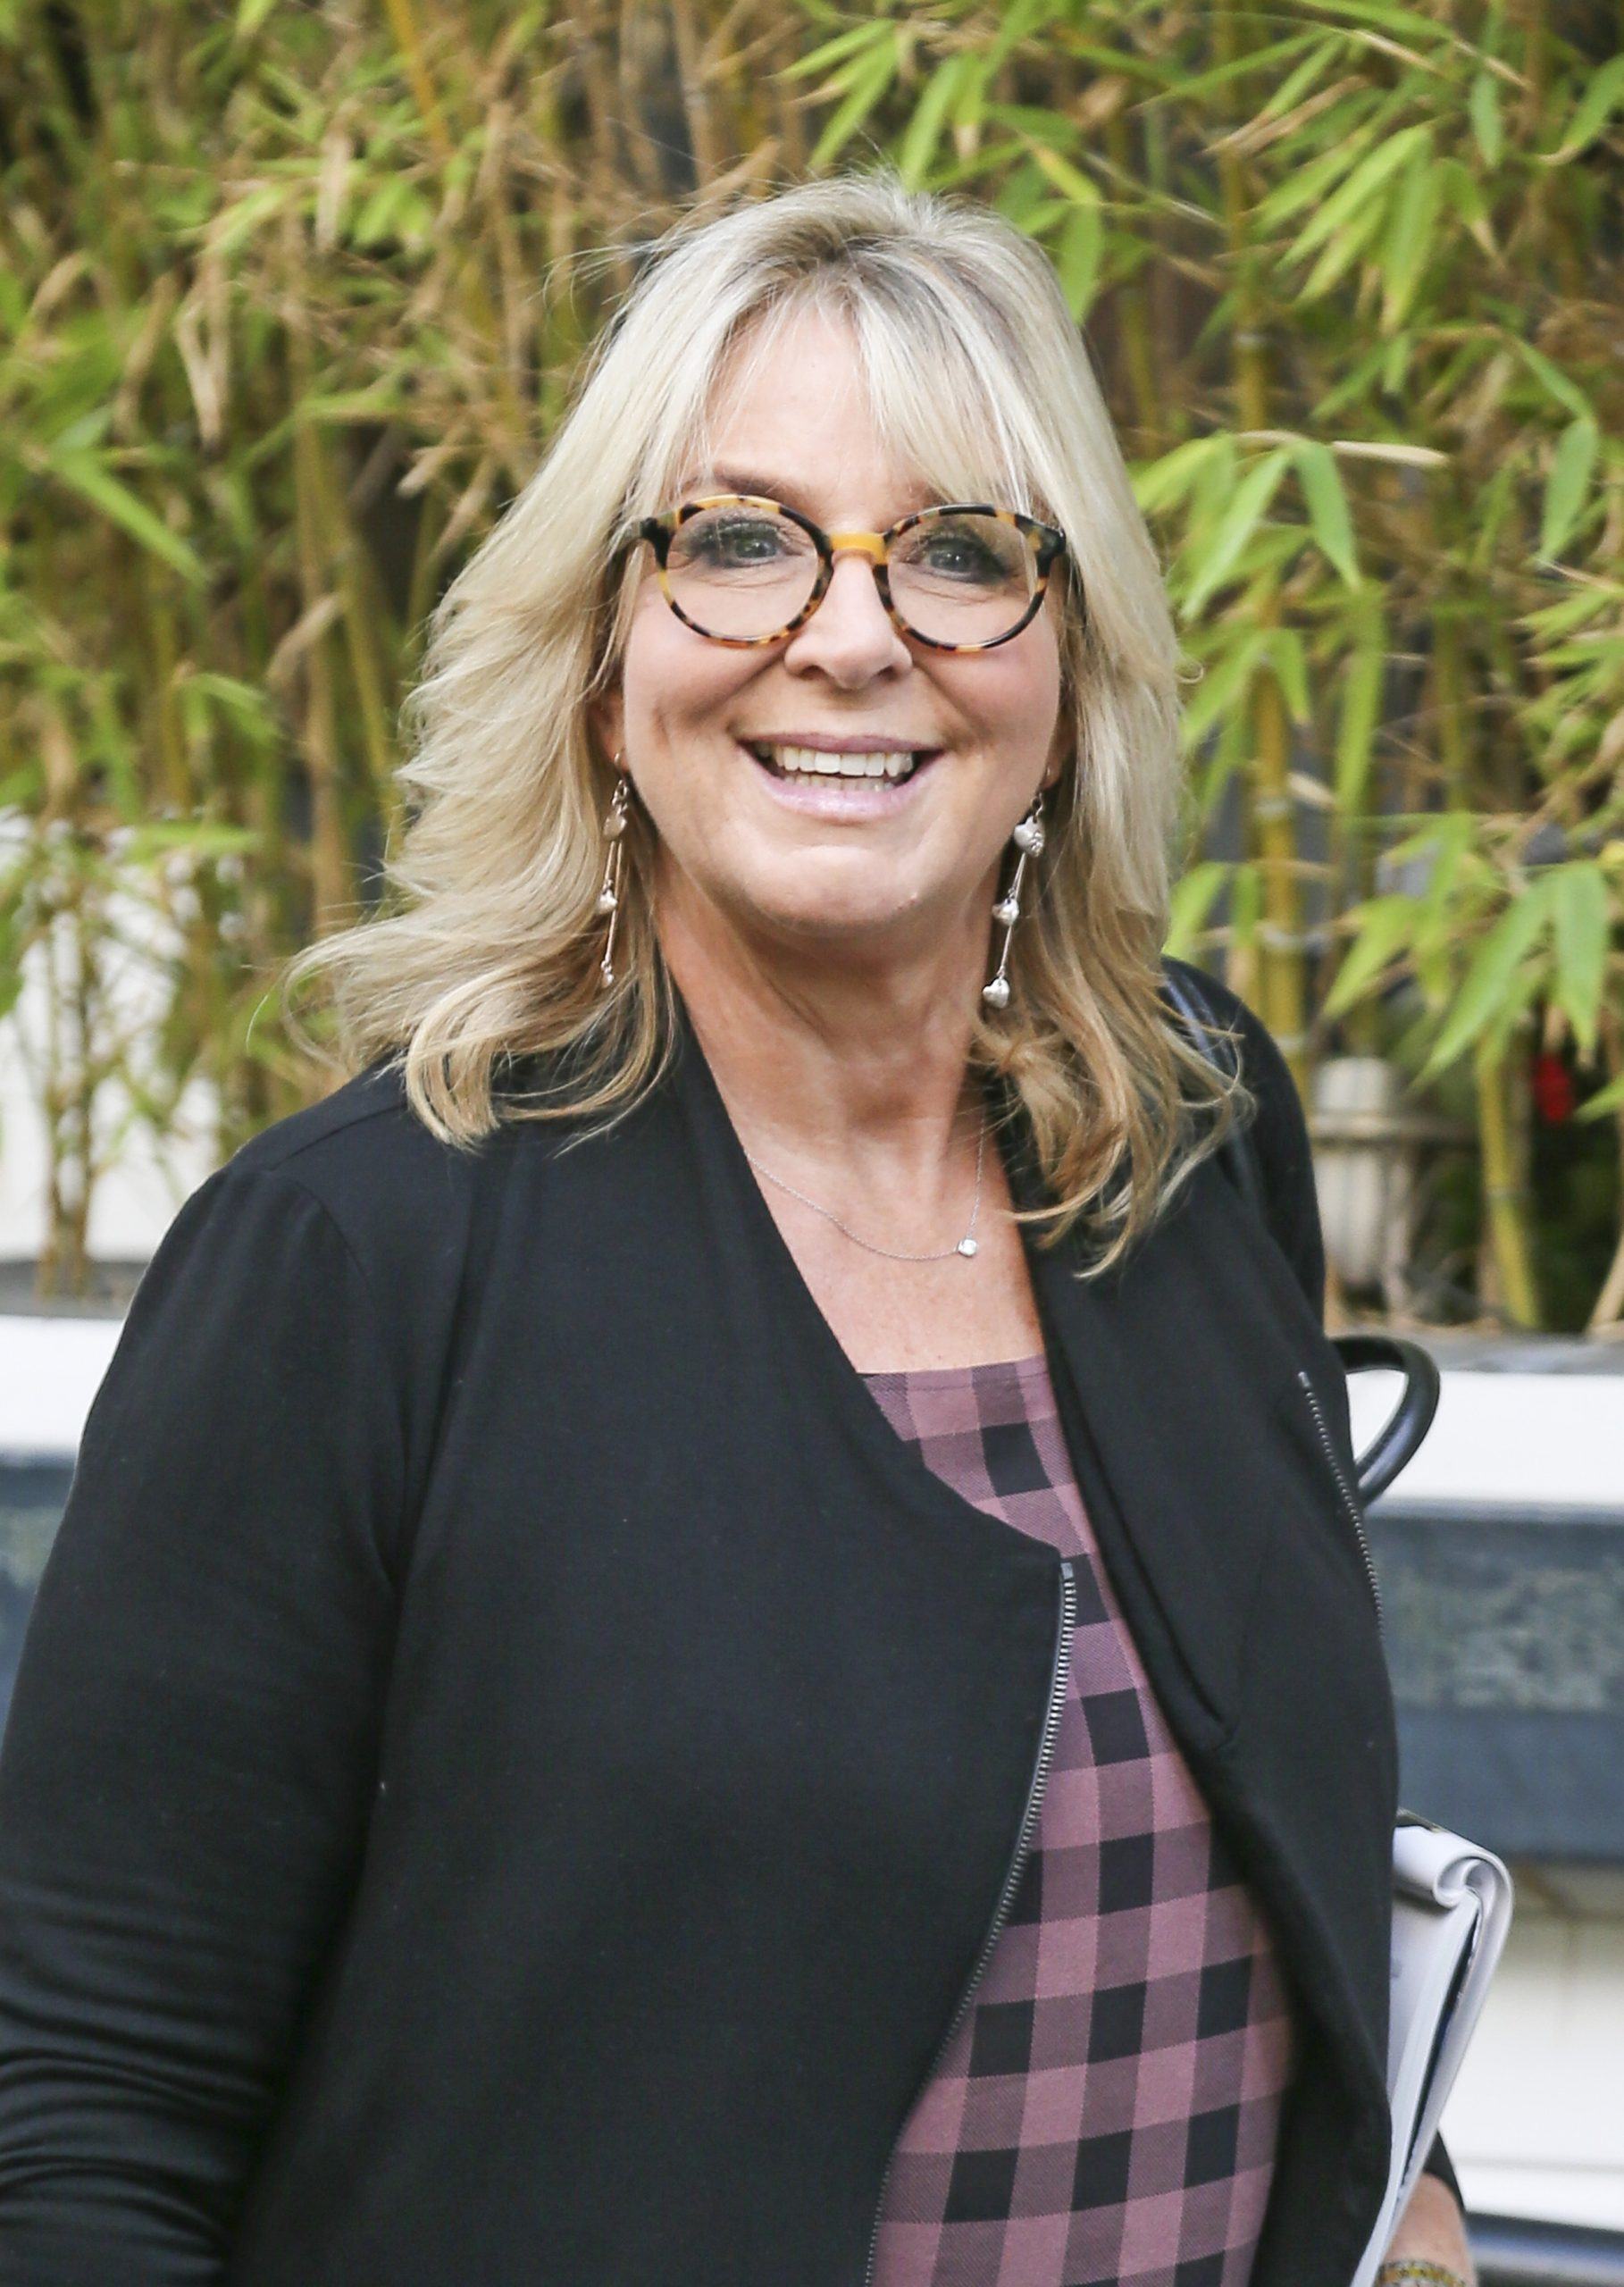 Fern Britton has poken about her marriage split